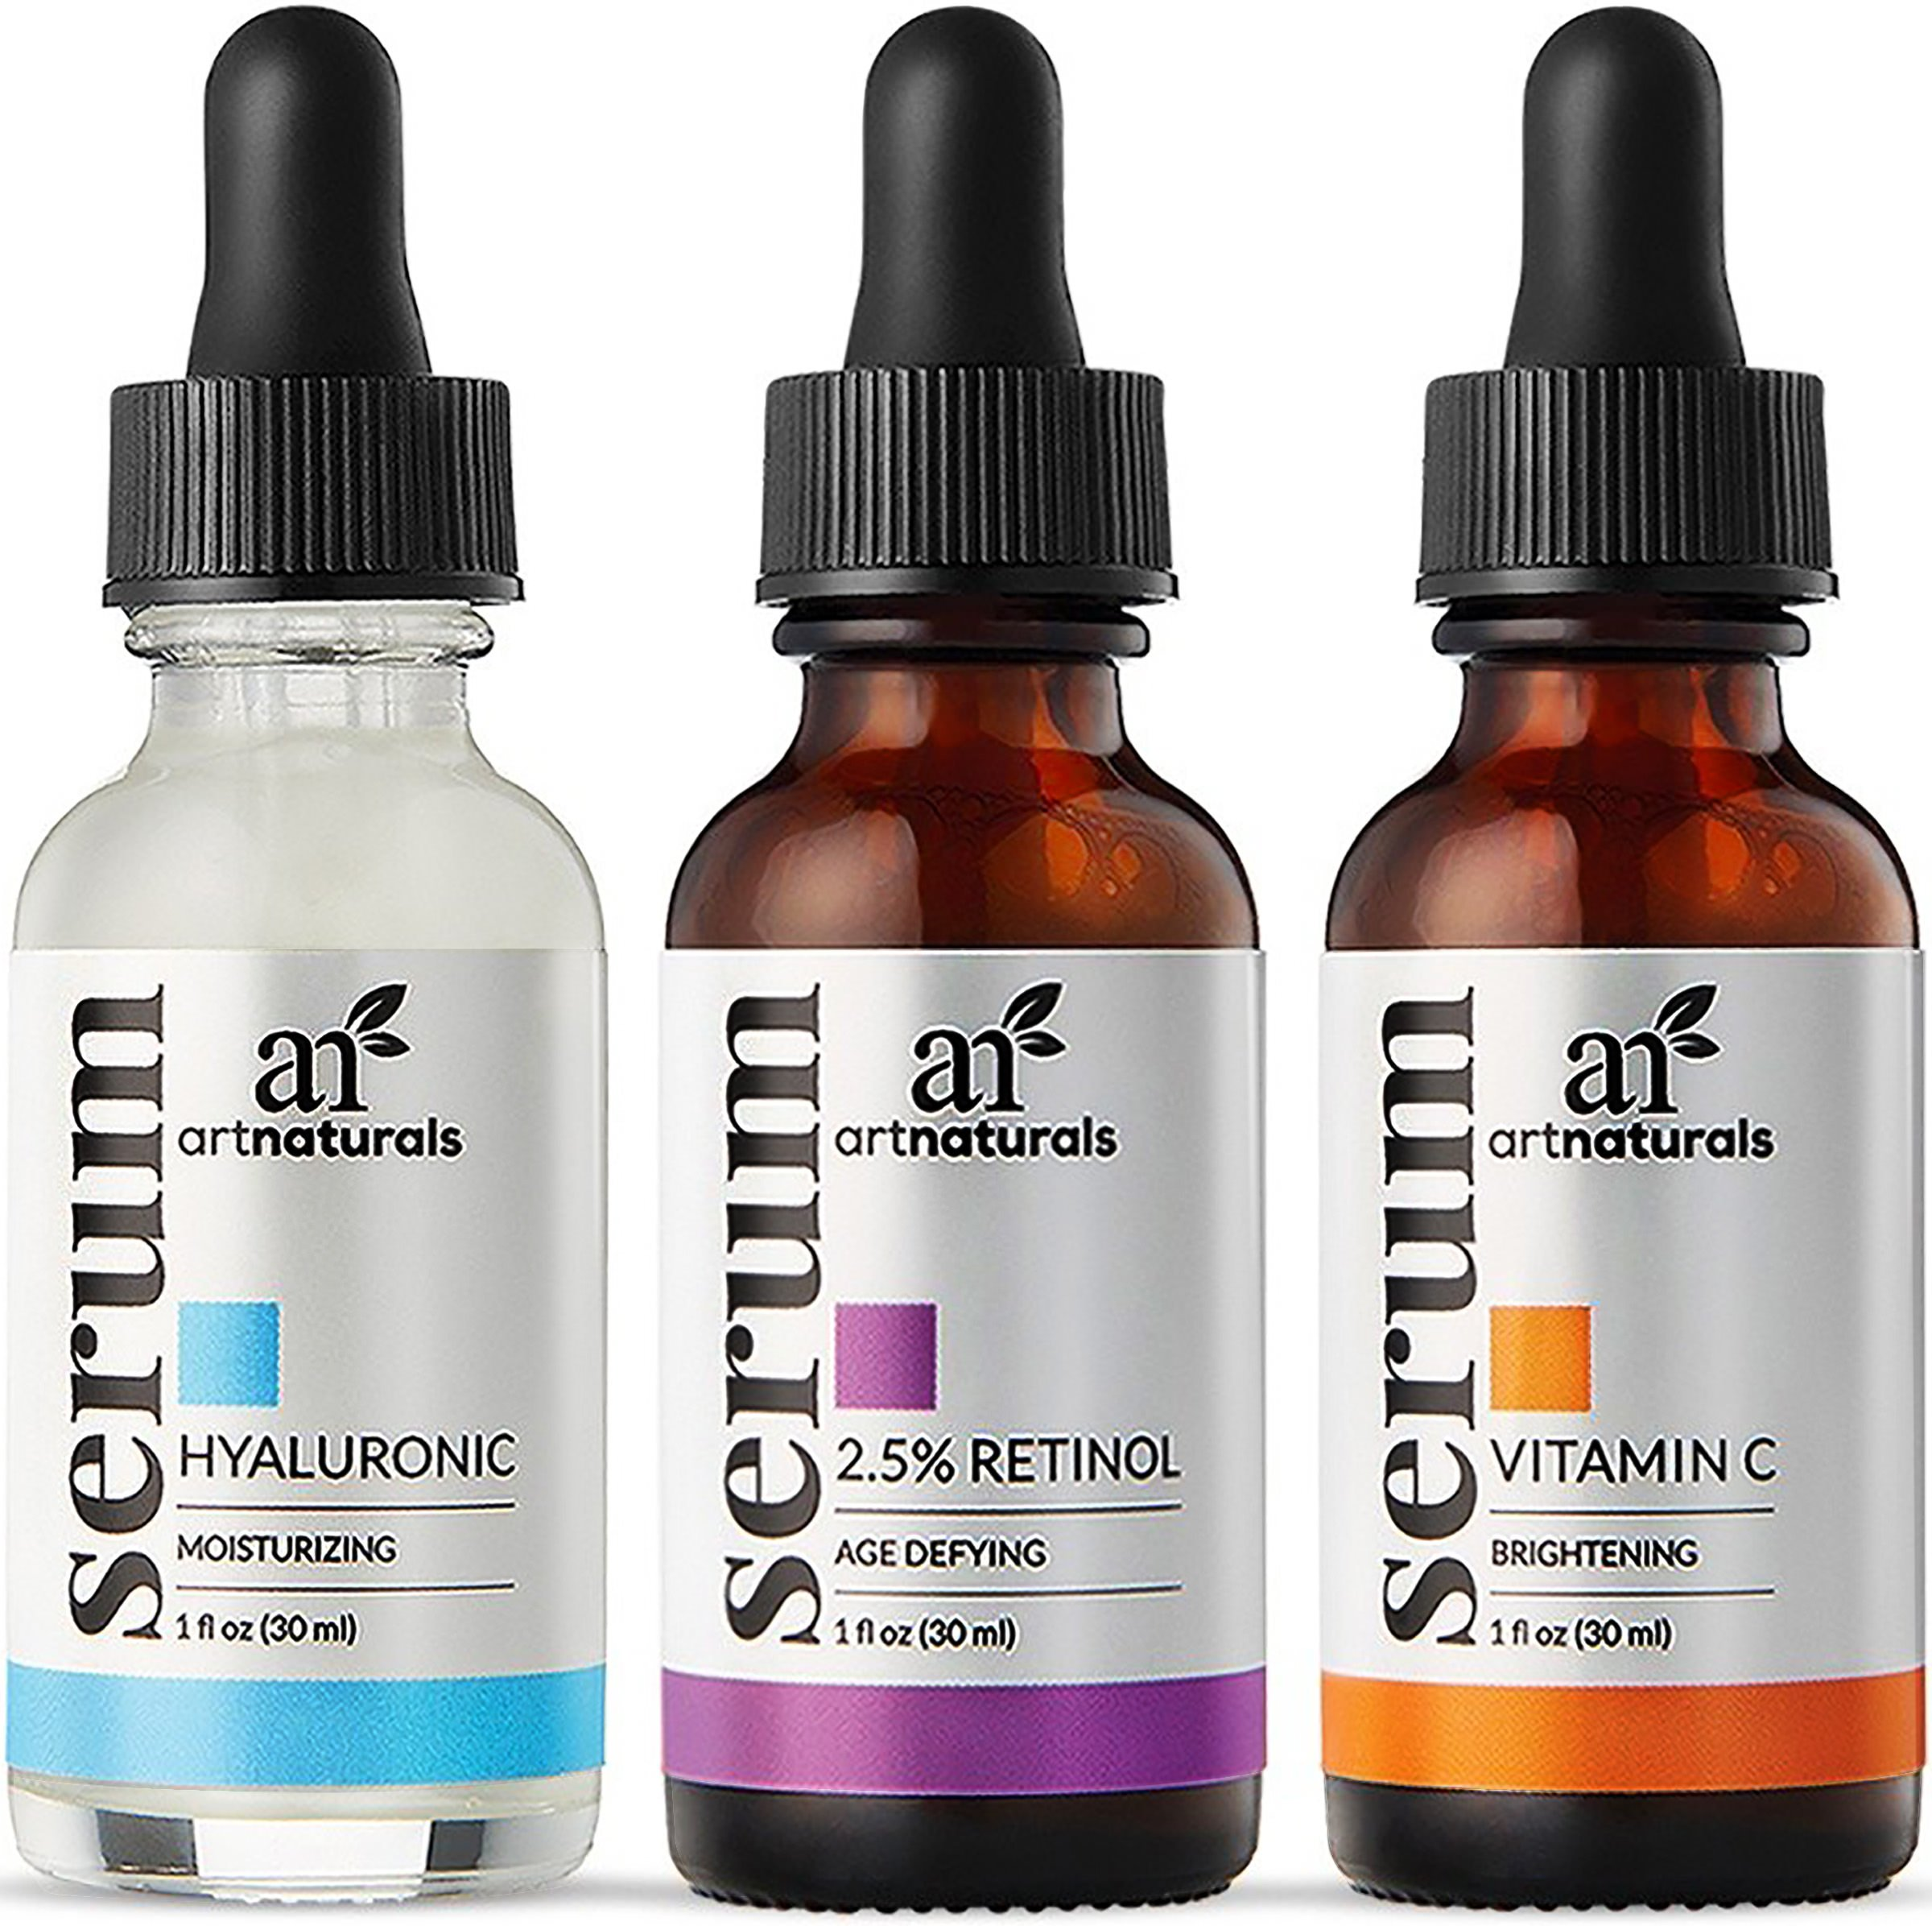 ArtNaturals Anti-Aging-Set with Vitamin-C Retinol and Hyaluronic-Acid - (3 x 1 oz) Serum for Anti Wrinkle and Dark Circle Remover – All Natural and Moisturizing by ArtNaturals (Image #1)